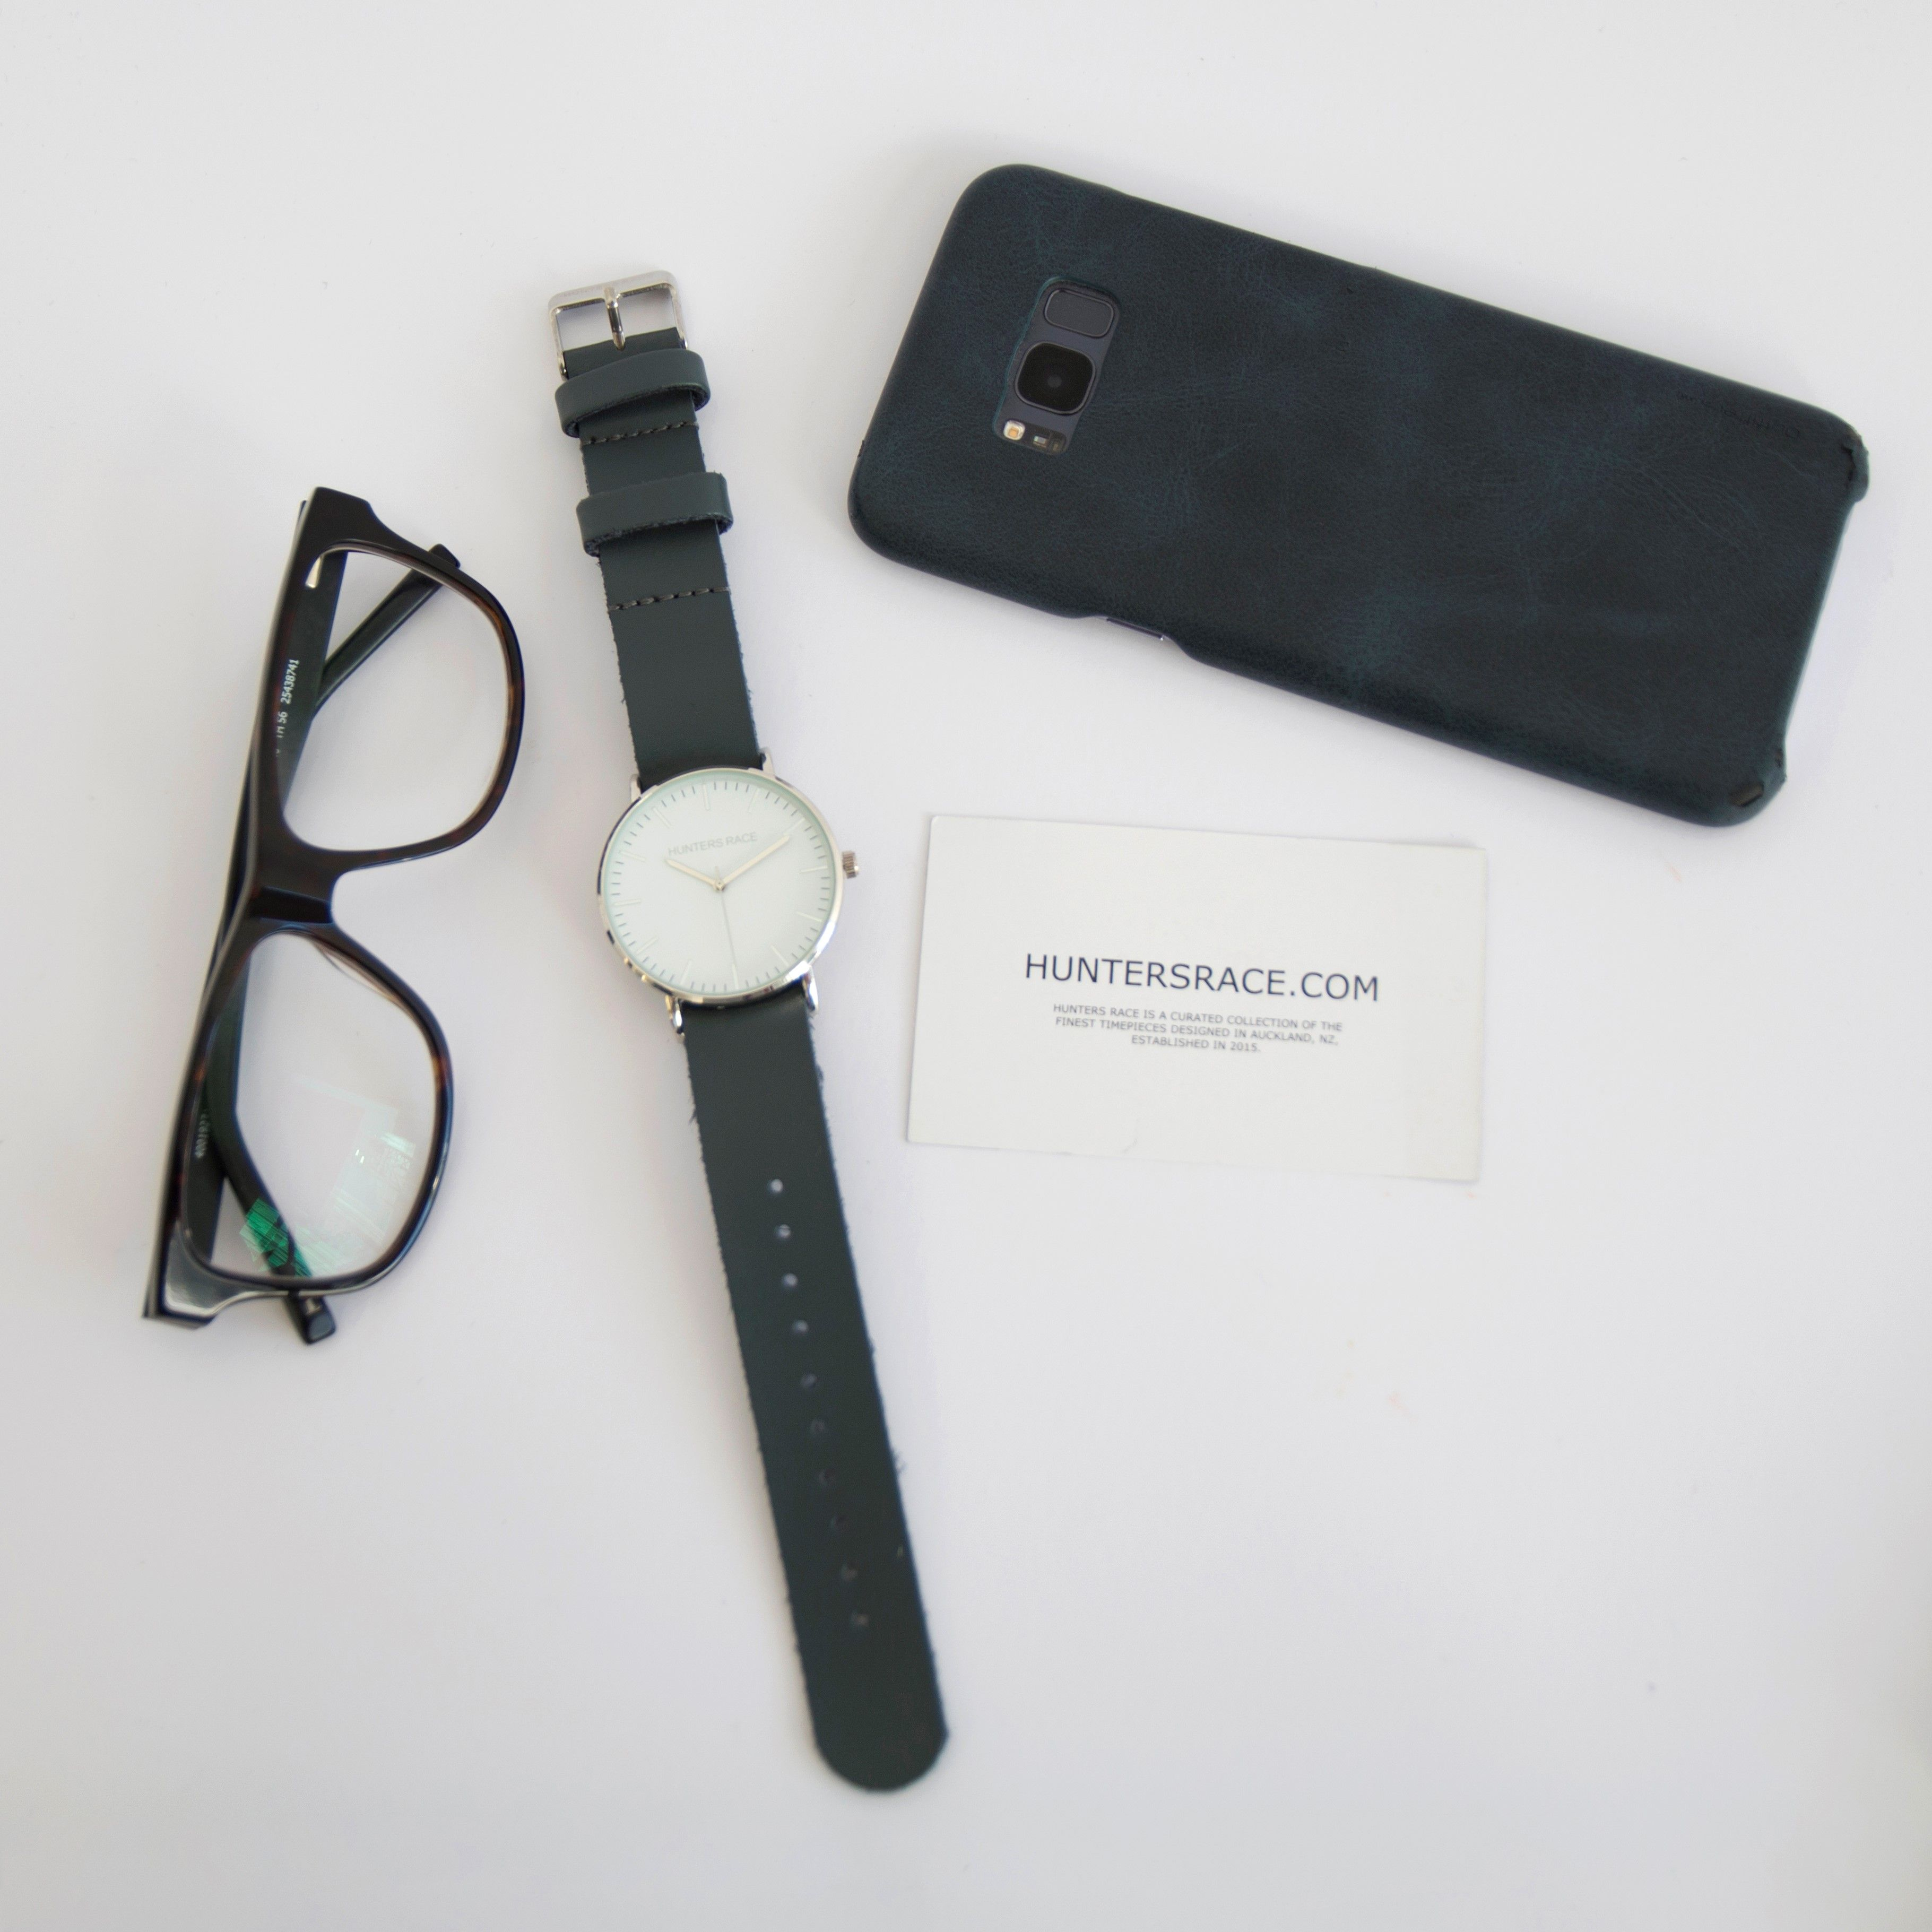 Hunters race watch with grey leather strap nzdesigned